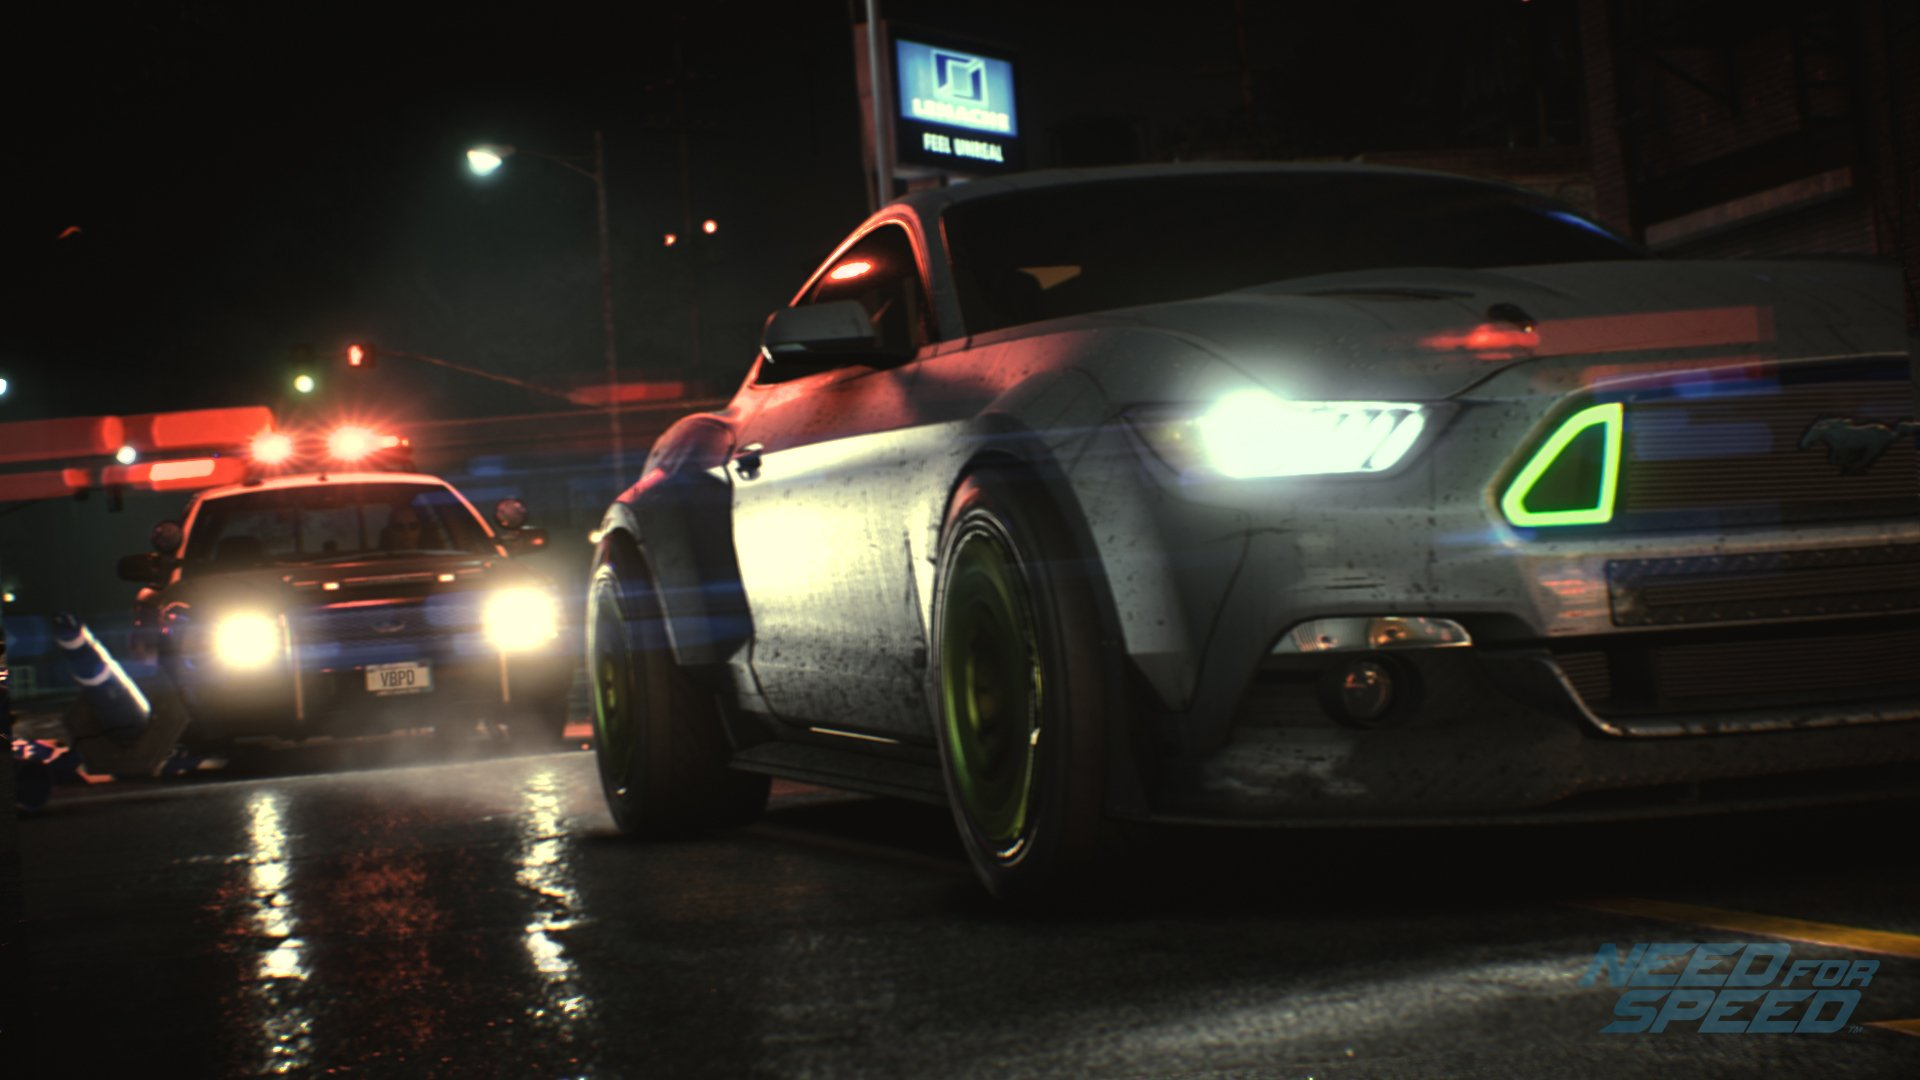 Need For Speed Wallpaper 1 Download Need For Speed Wallpaper 1920x1080